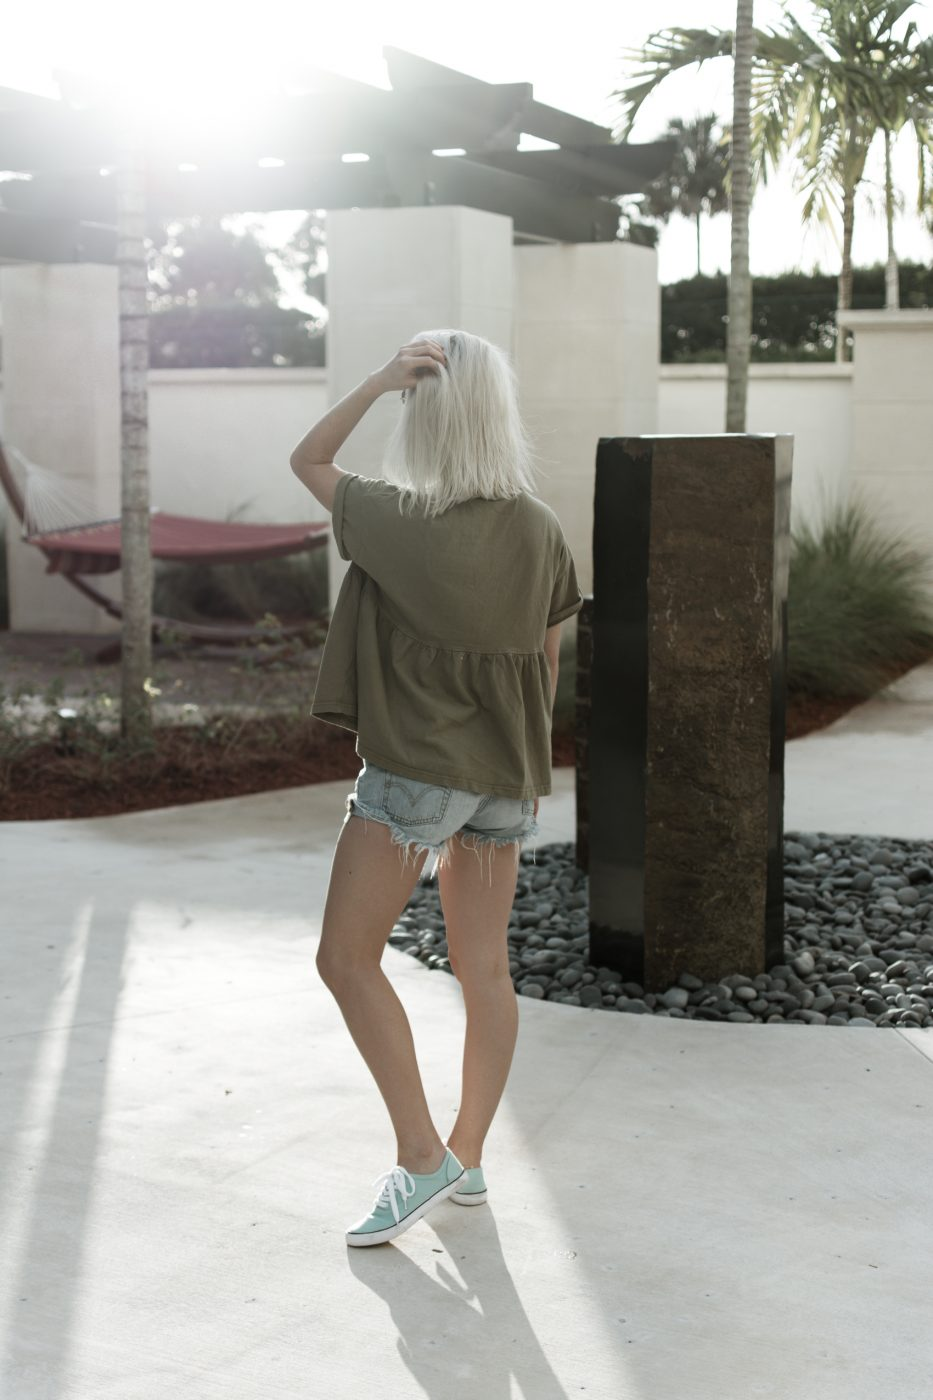 Romwe top, Levi's, and sneakers